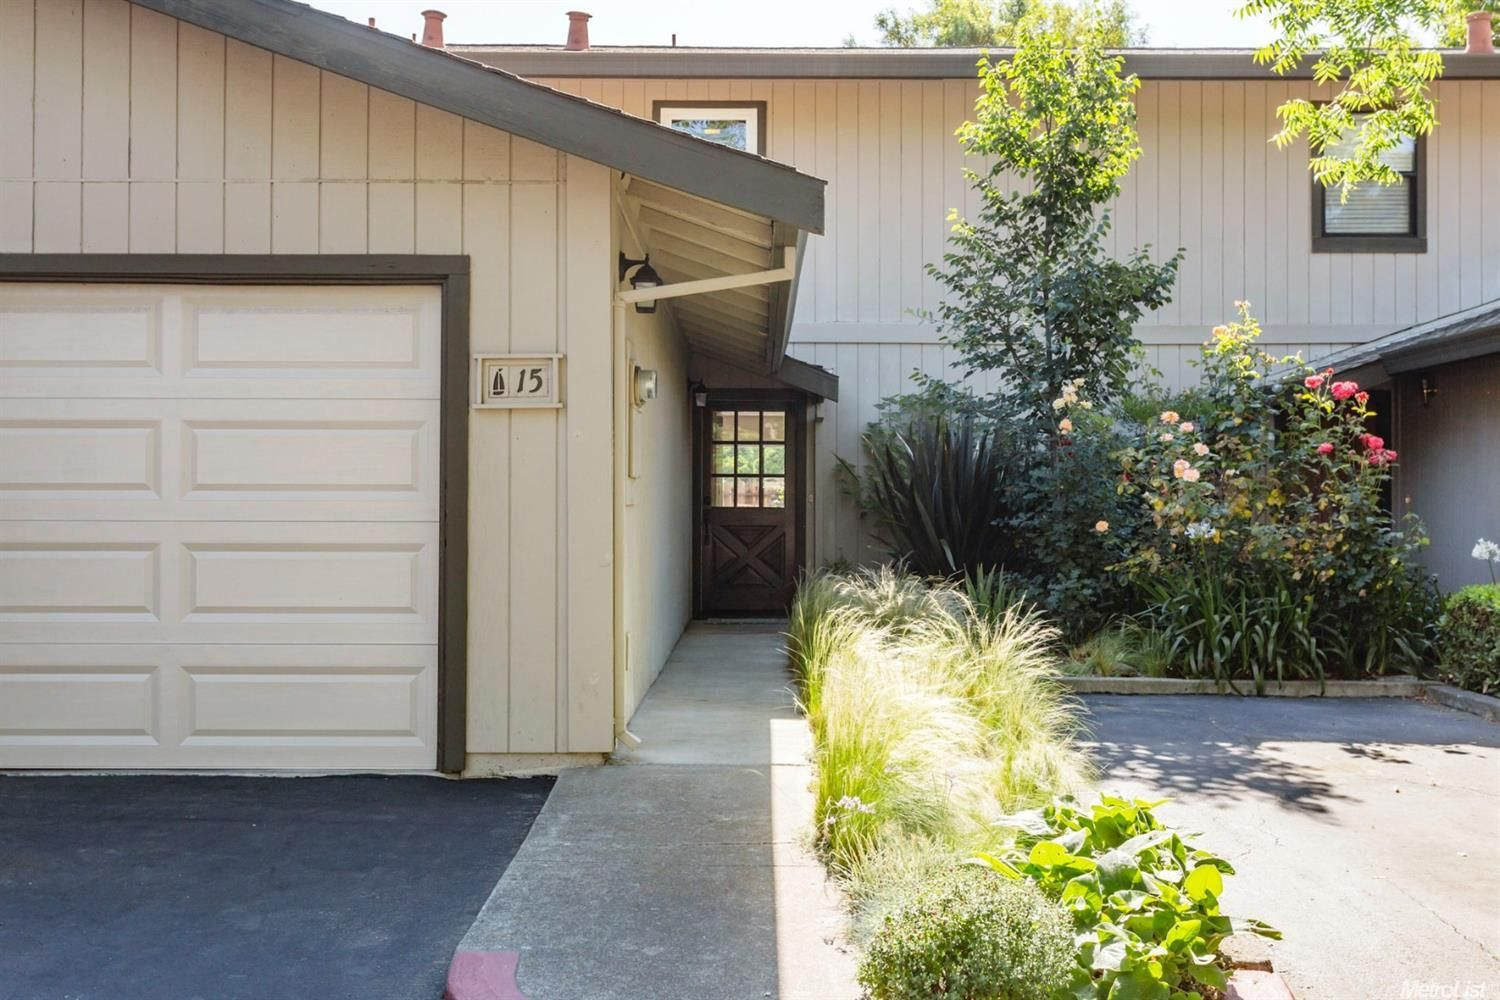 $315000   3401 Bermuda Ave 15 Davis CA 95616 This Quiet And Refined  Stonegate Home Has